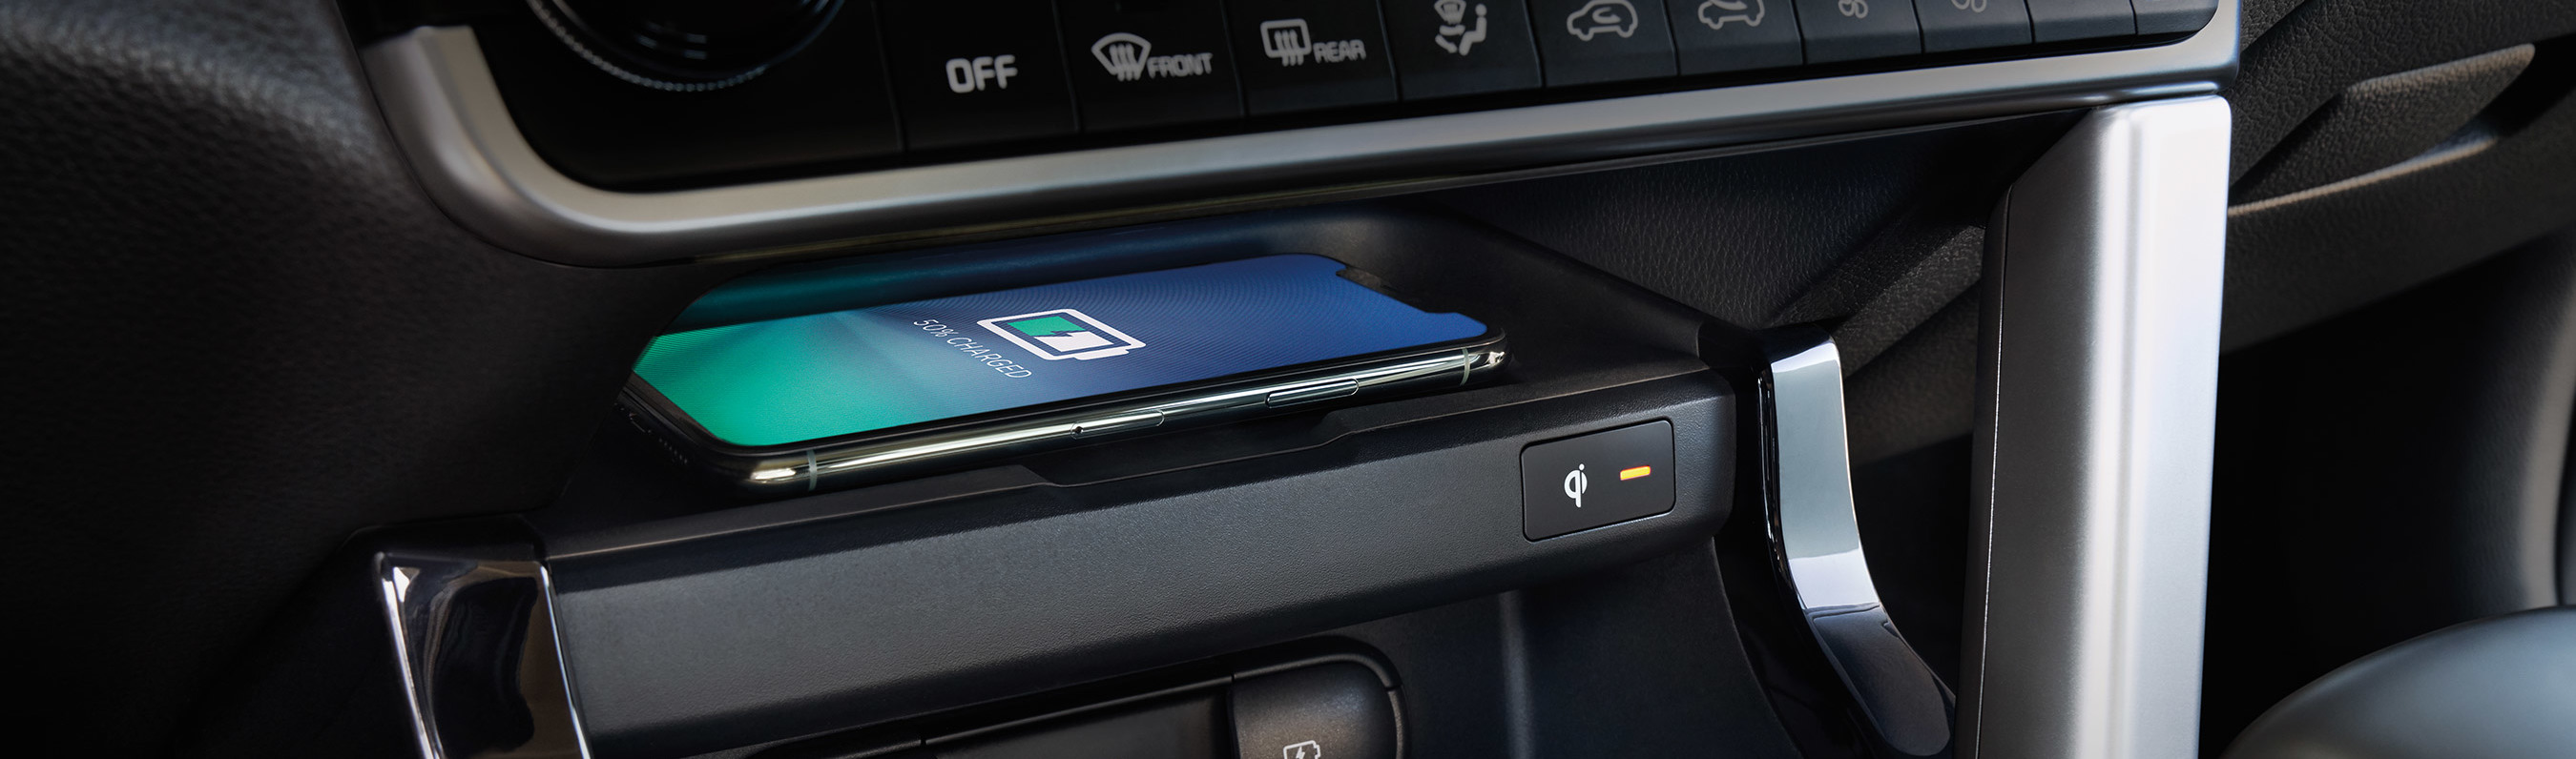 Charge Your Device Quickly in the 2021 Kia Seltos